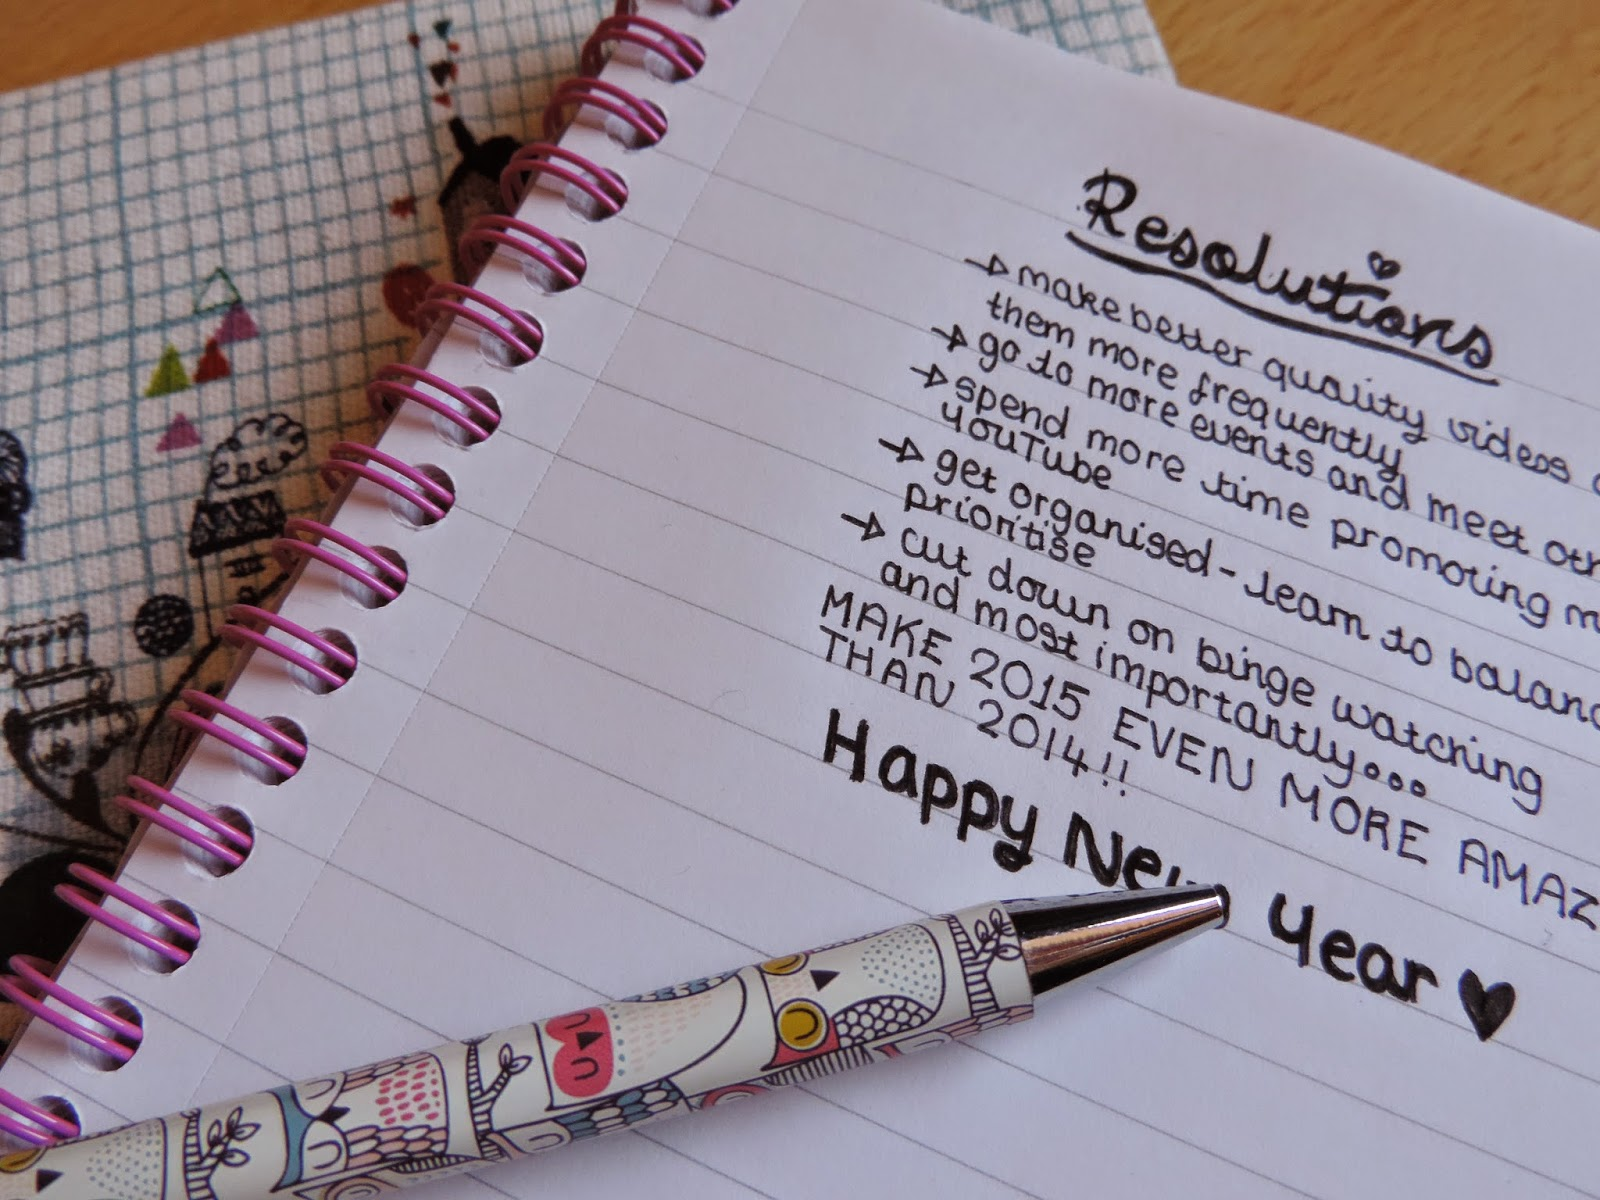 New Year's Resolutions 2015